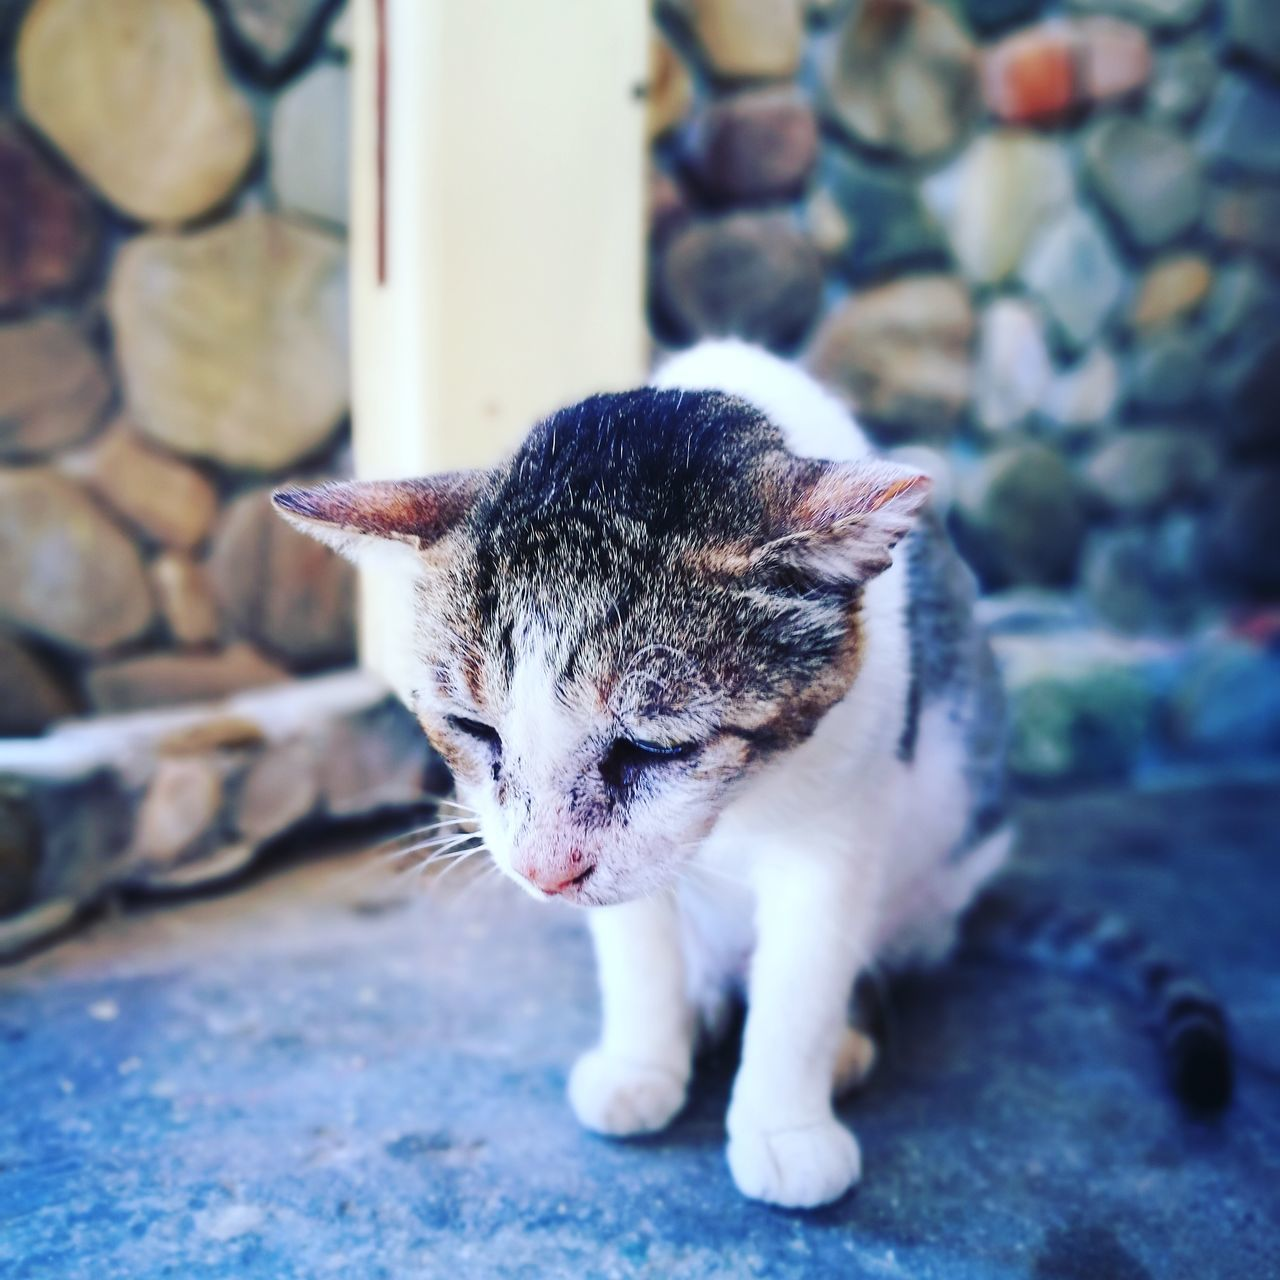 domestic cat, pets, domestic animals, animal themes, one animal, feline, mammal, no people, day, outdoors, close-up